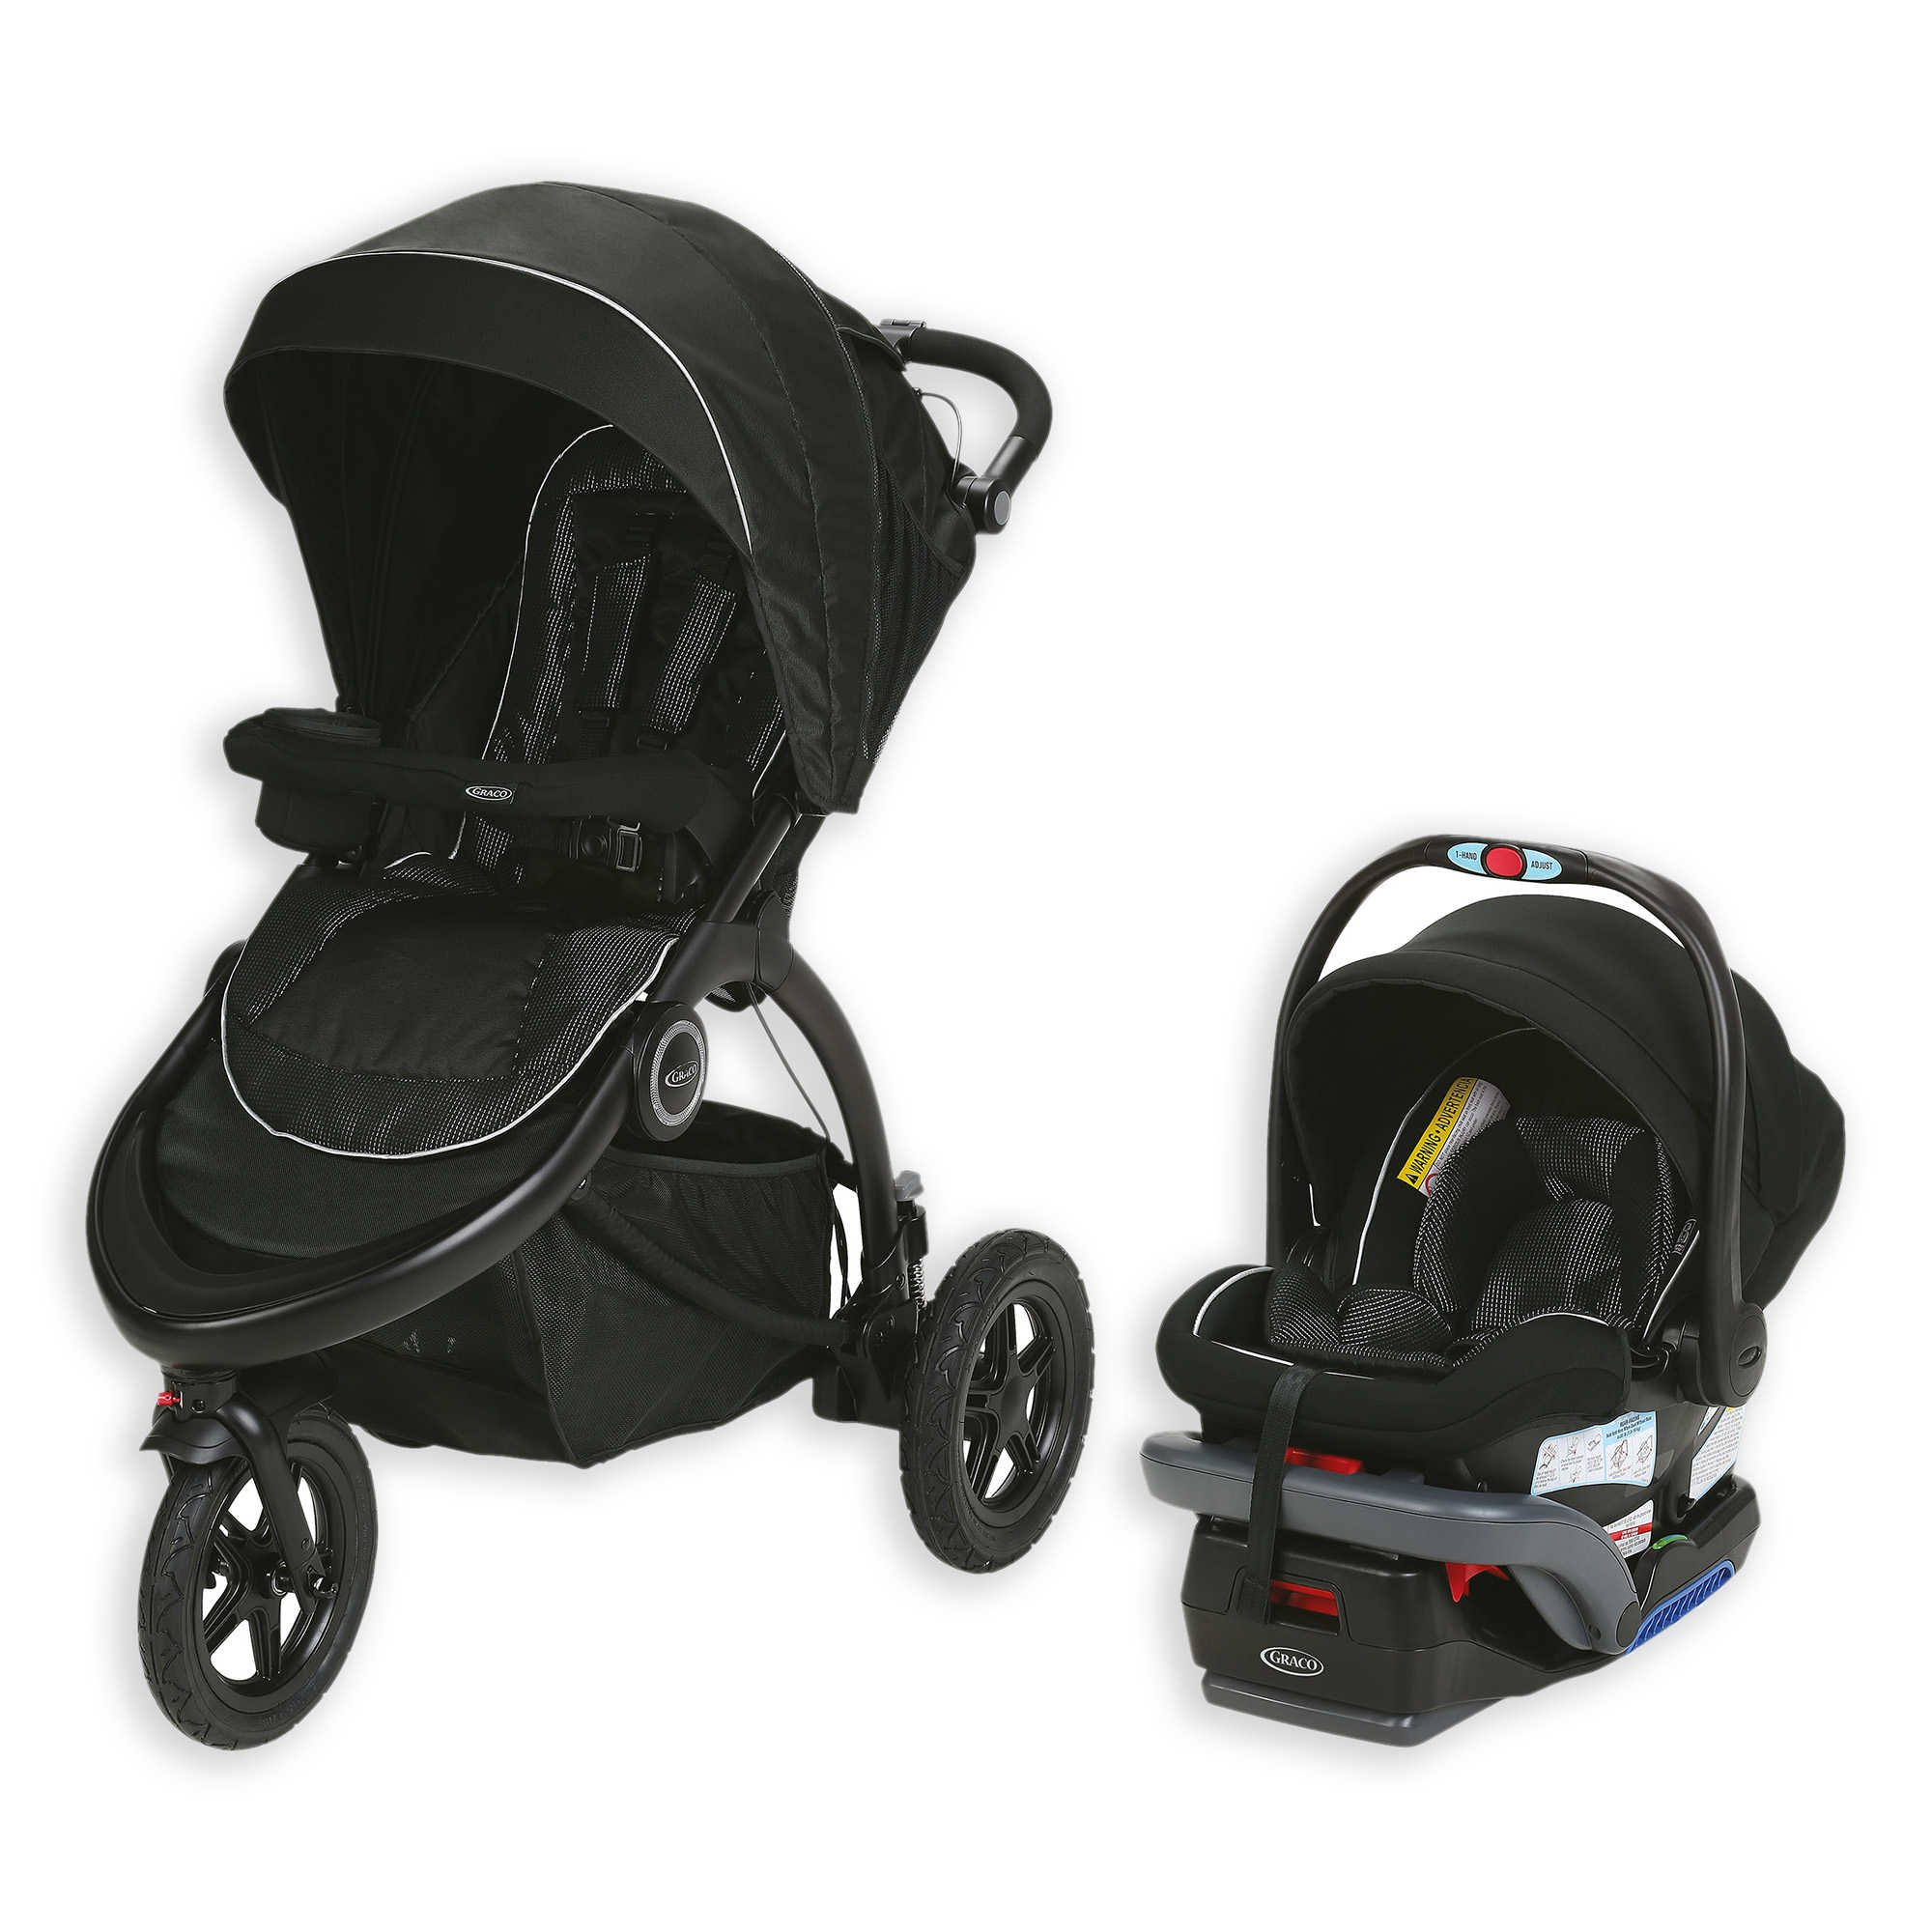 Jogger Travel System In Comet by Graco Trailrider (Image #1)